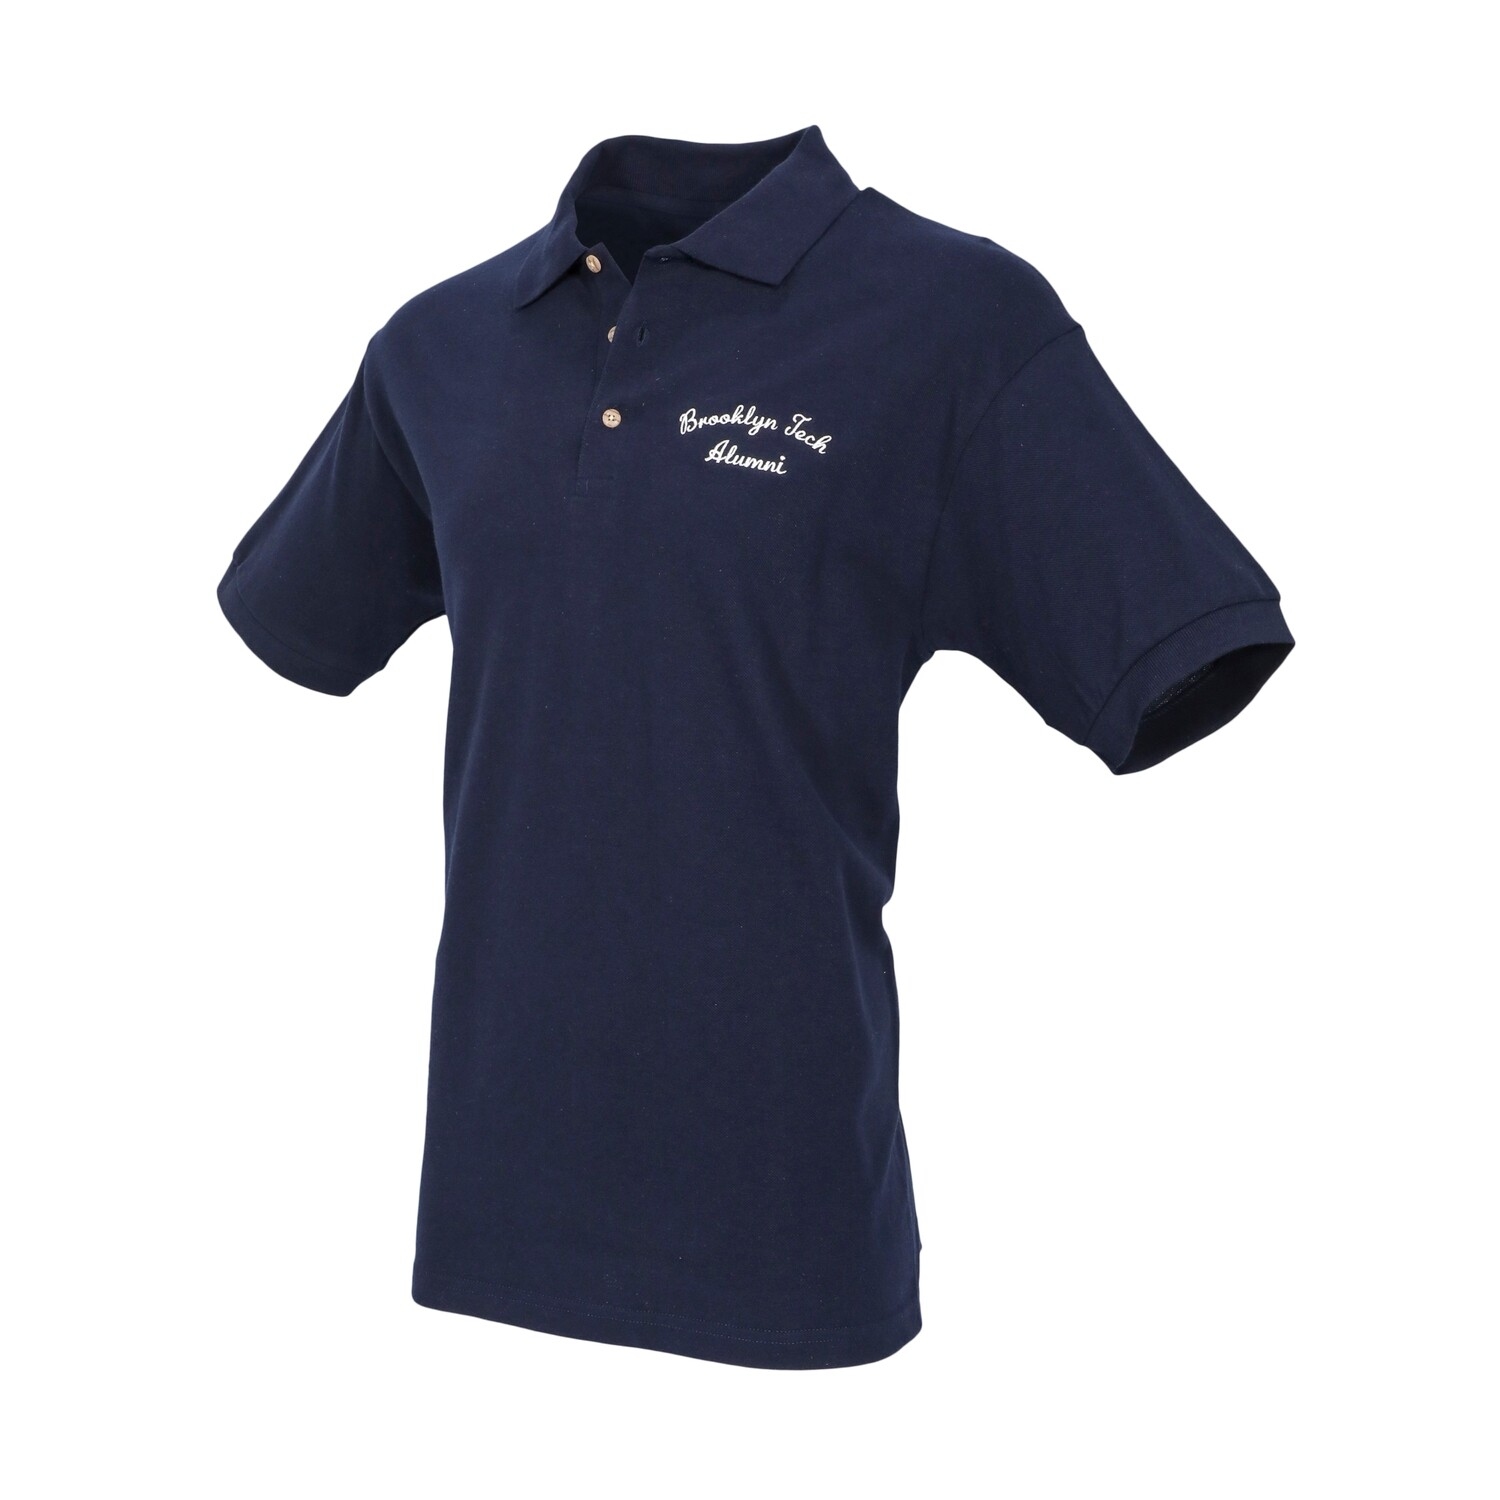 Golf Shirt - Navy